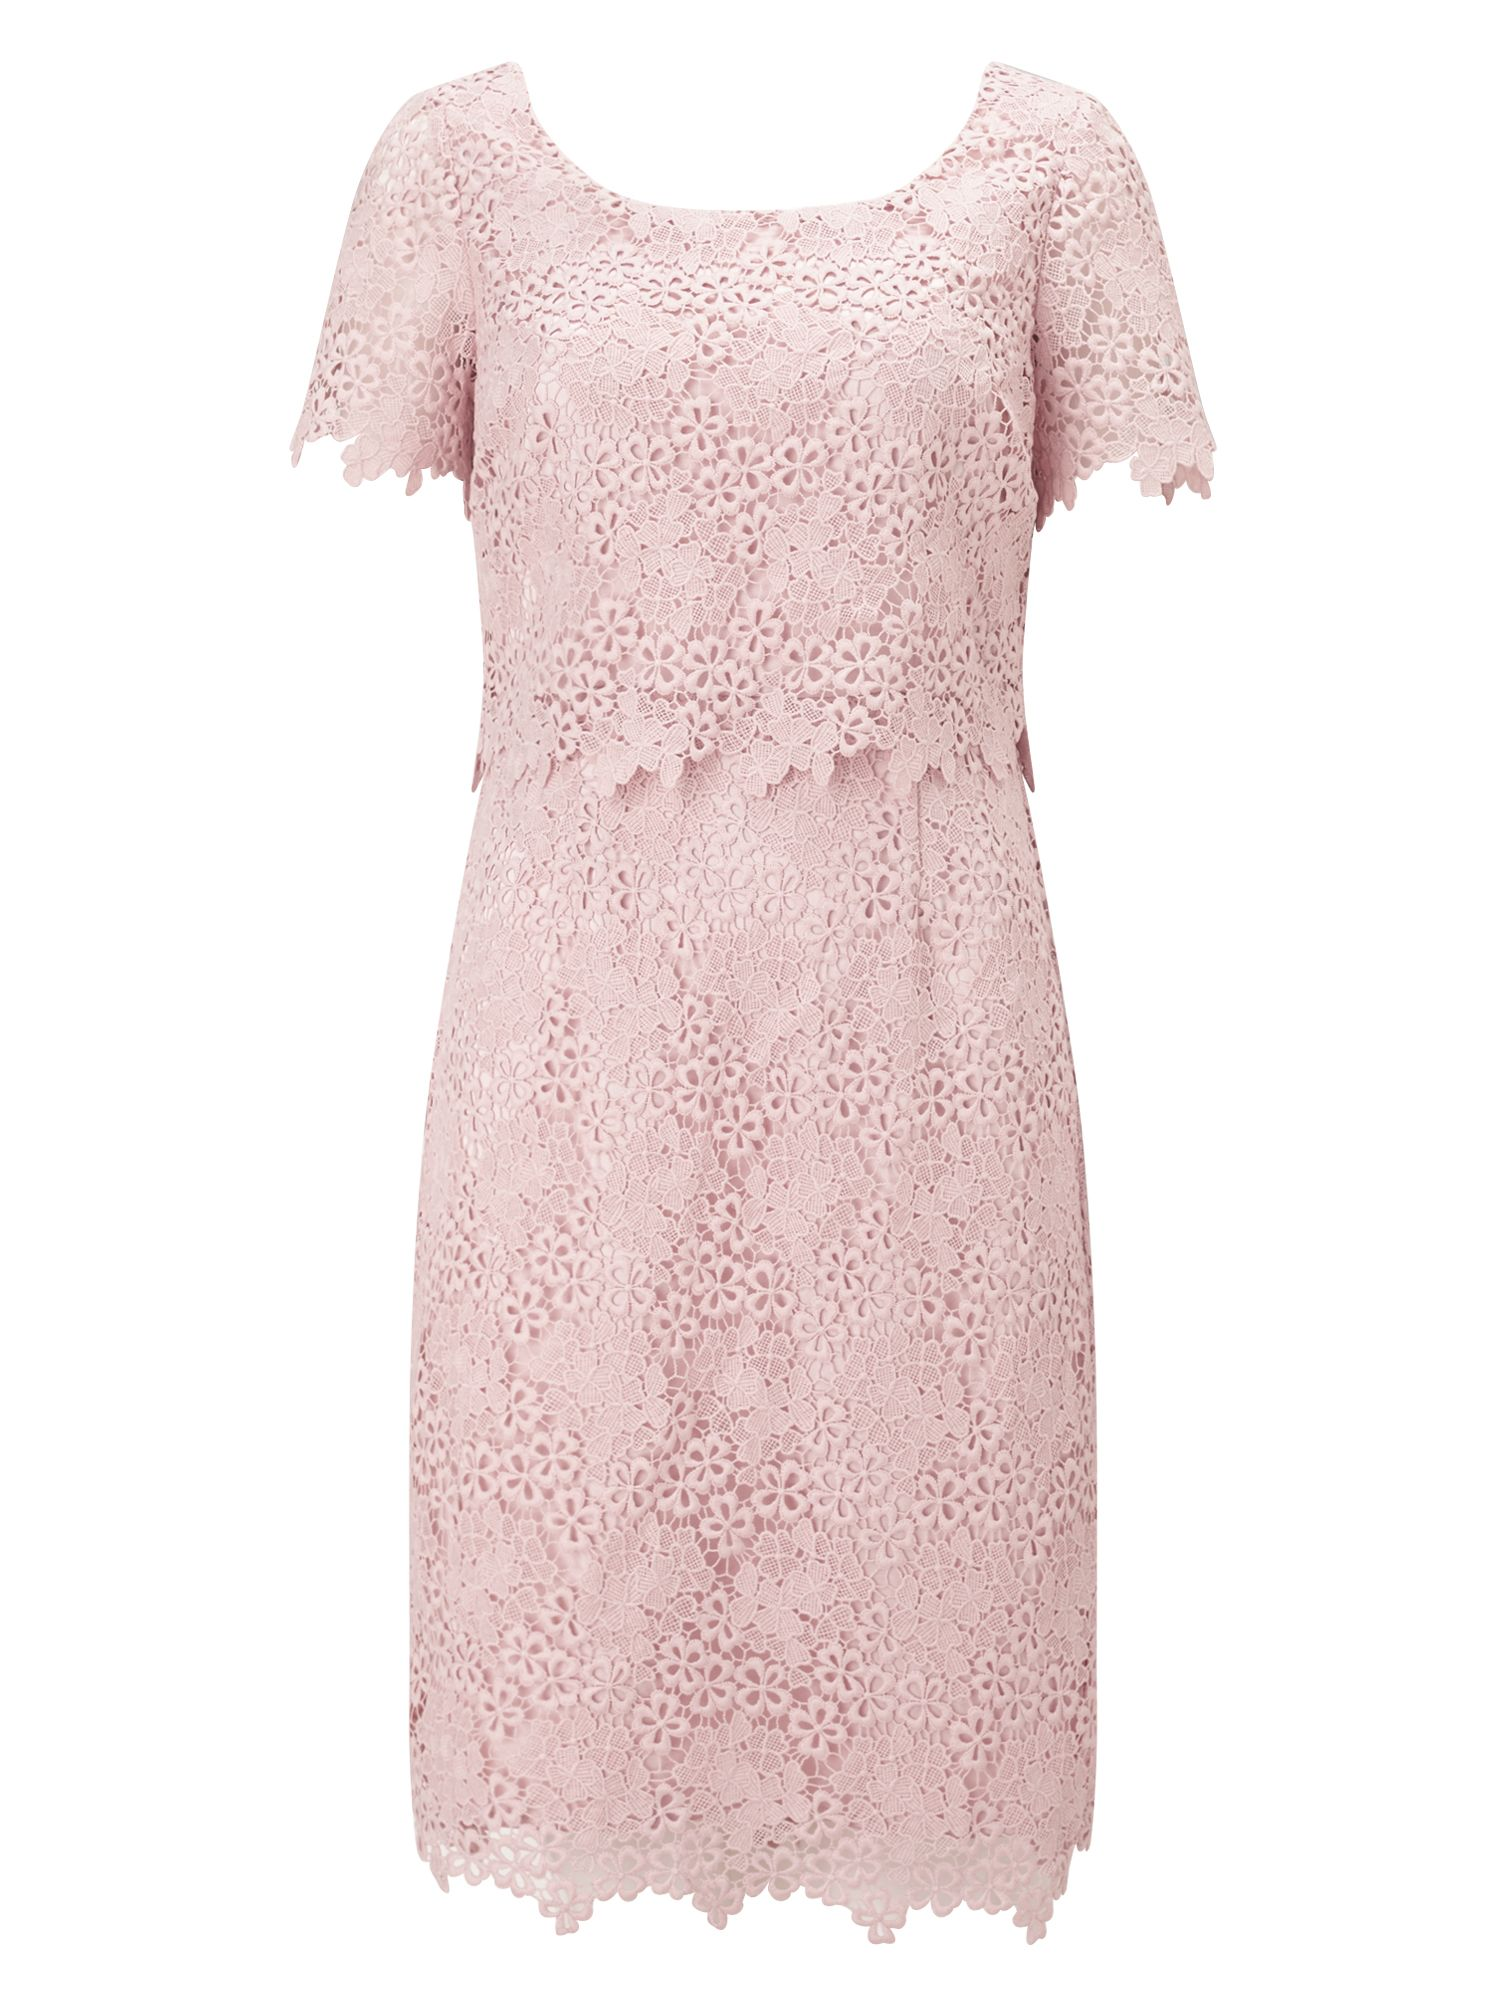 Jacques Vert Petite Ditsy Lace Dress, Pink